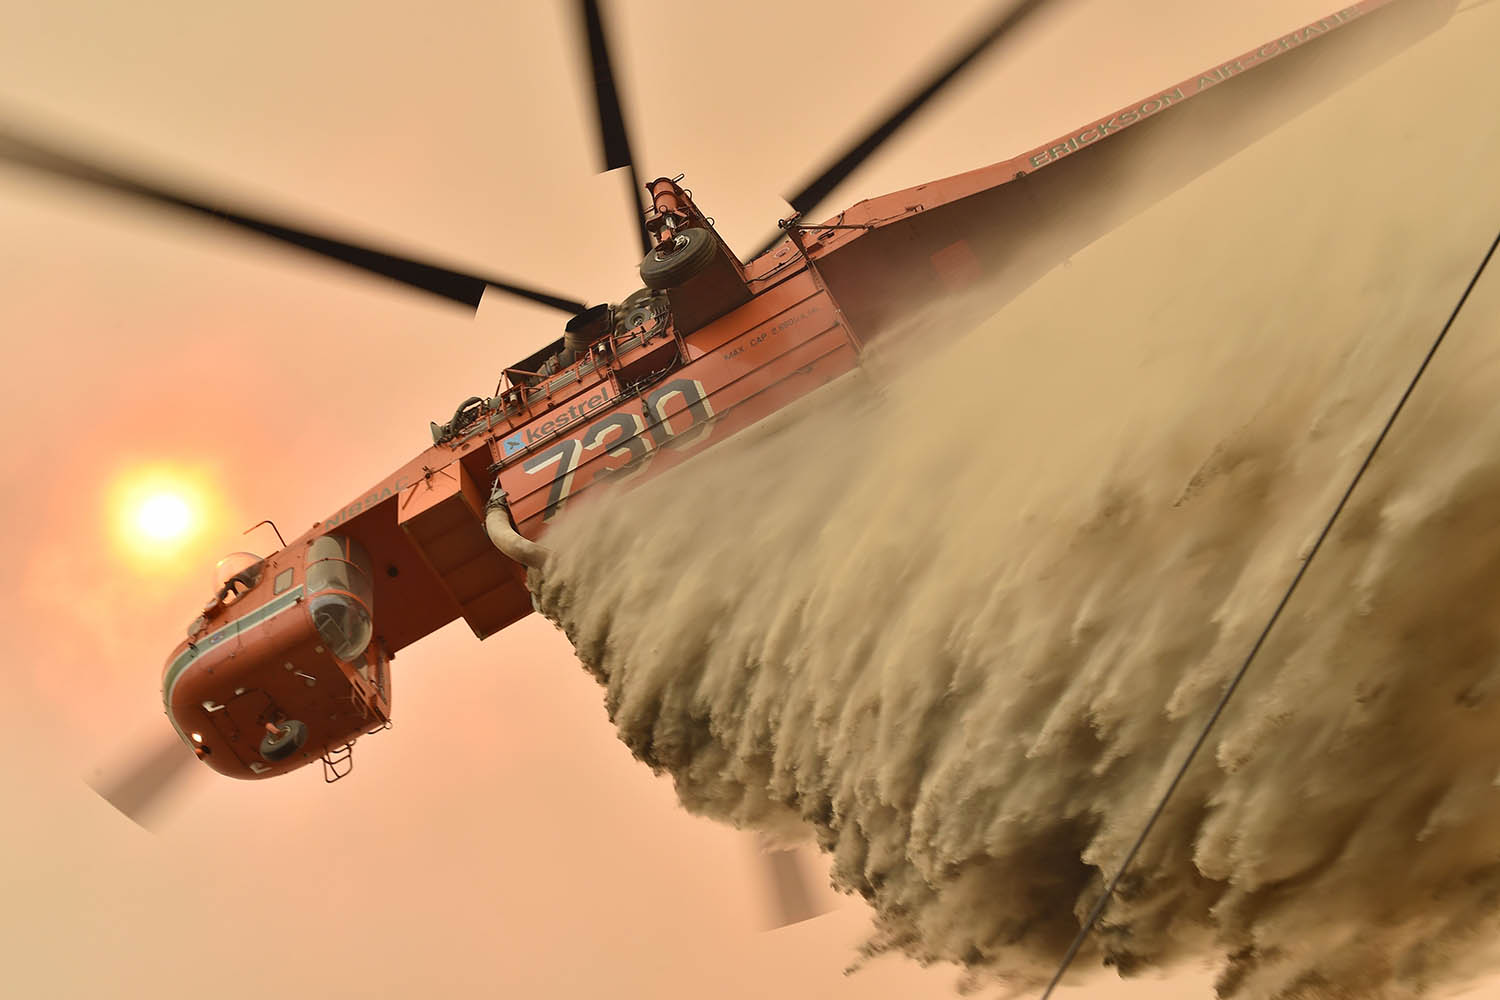 A helicopter drops fire retardant to protect a property in Balmoral, about 100 miles southwest of Sydney, on Dec. 19. PETER PARKS/AFP via Getty Images